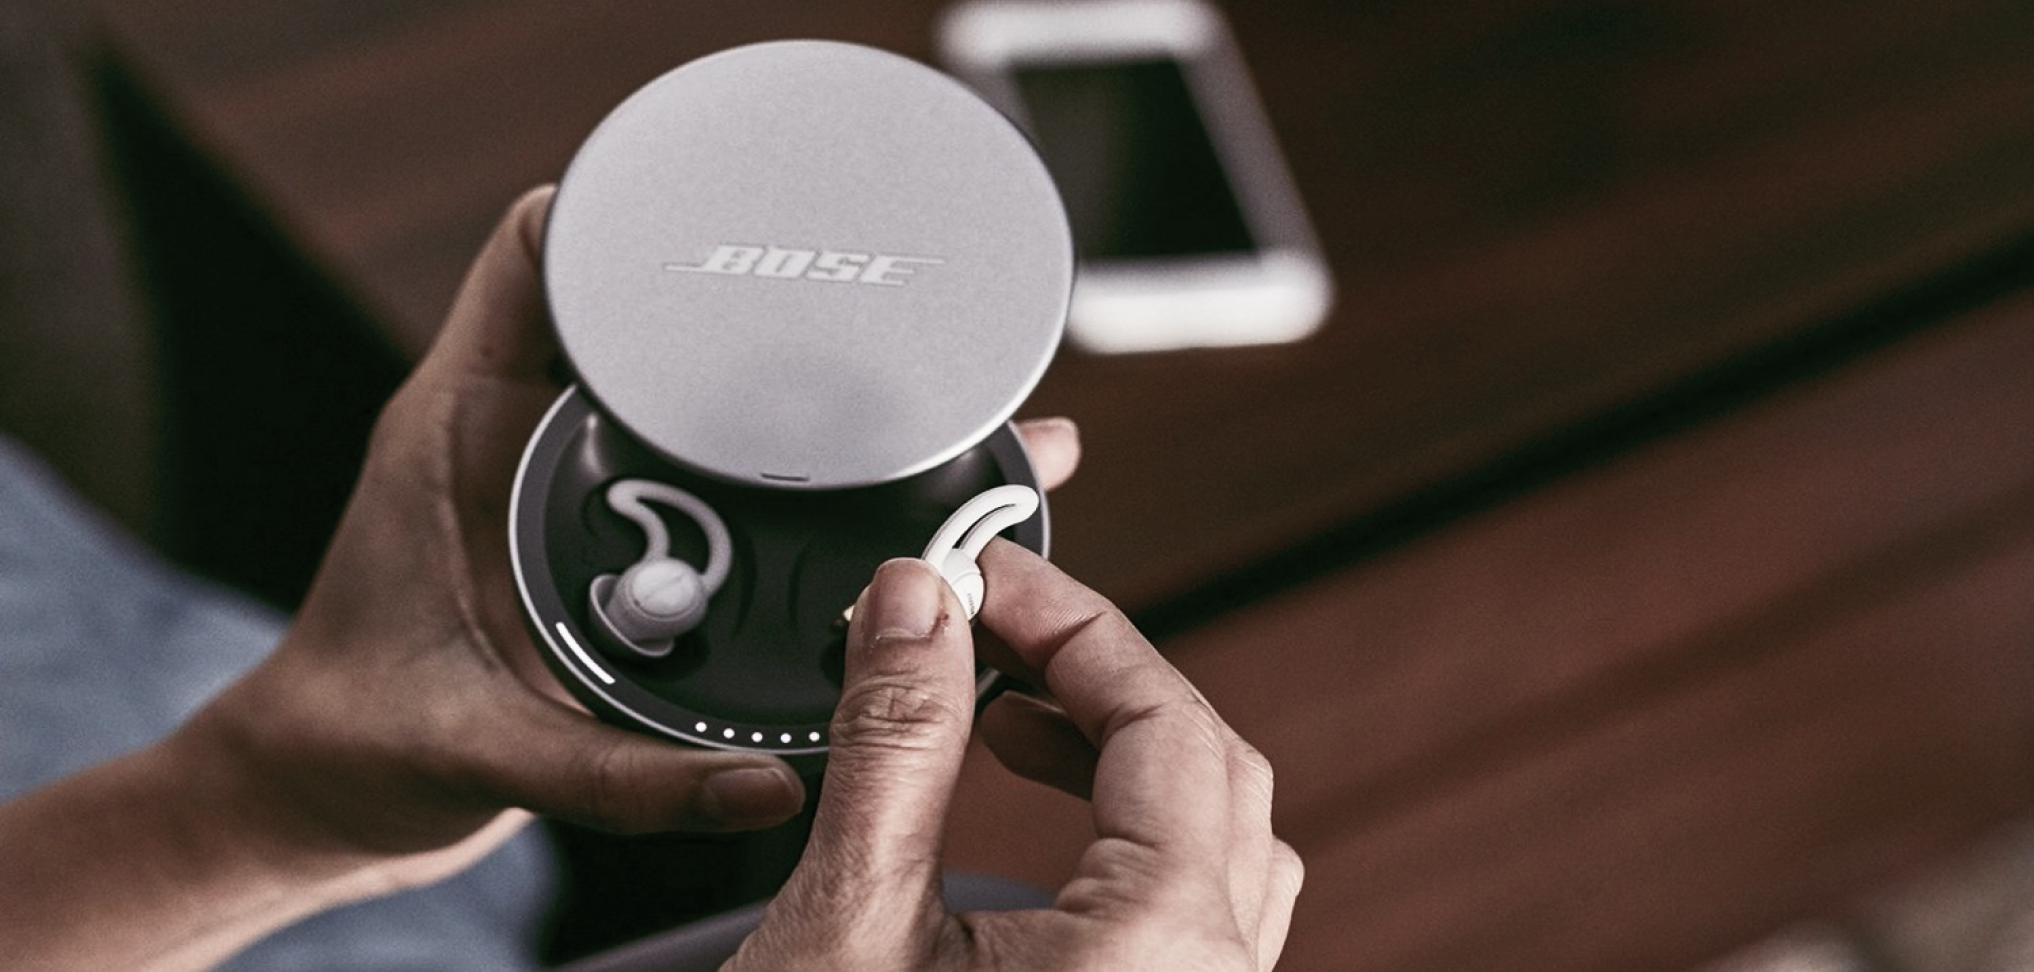 Close-up picture of hand holding Bose Sleepbuds with a phone in the background.